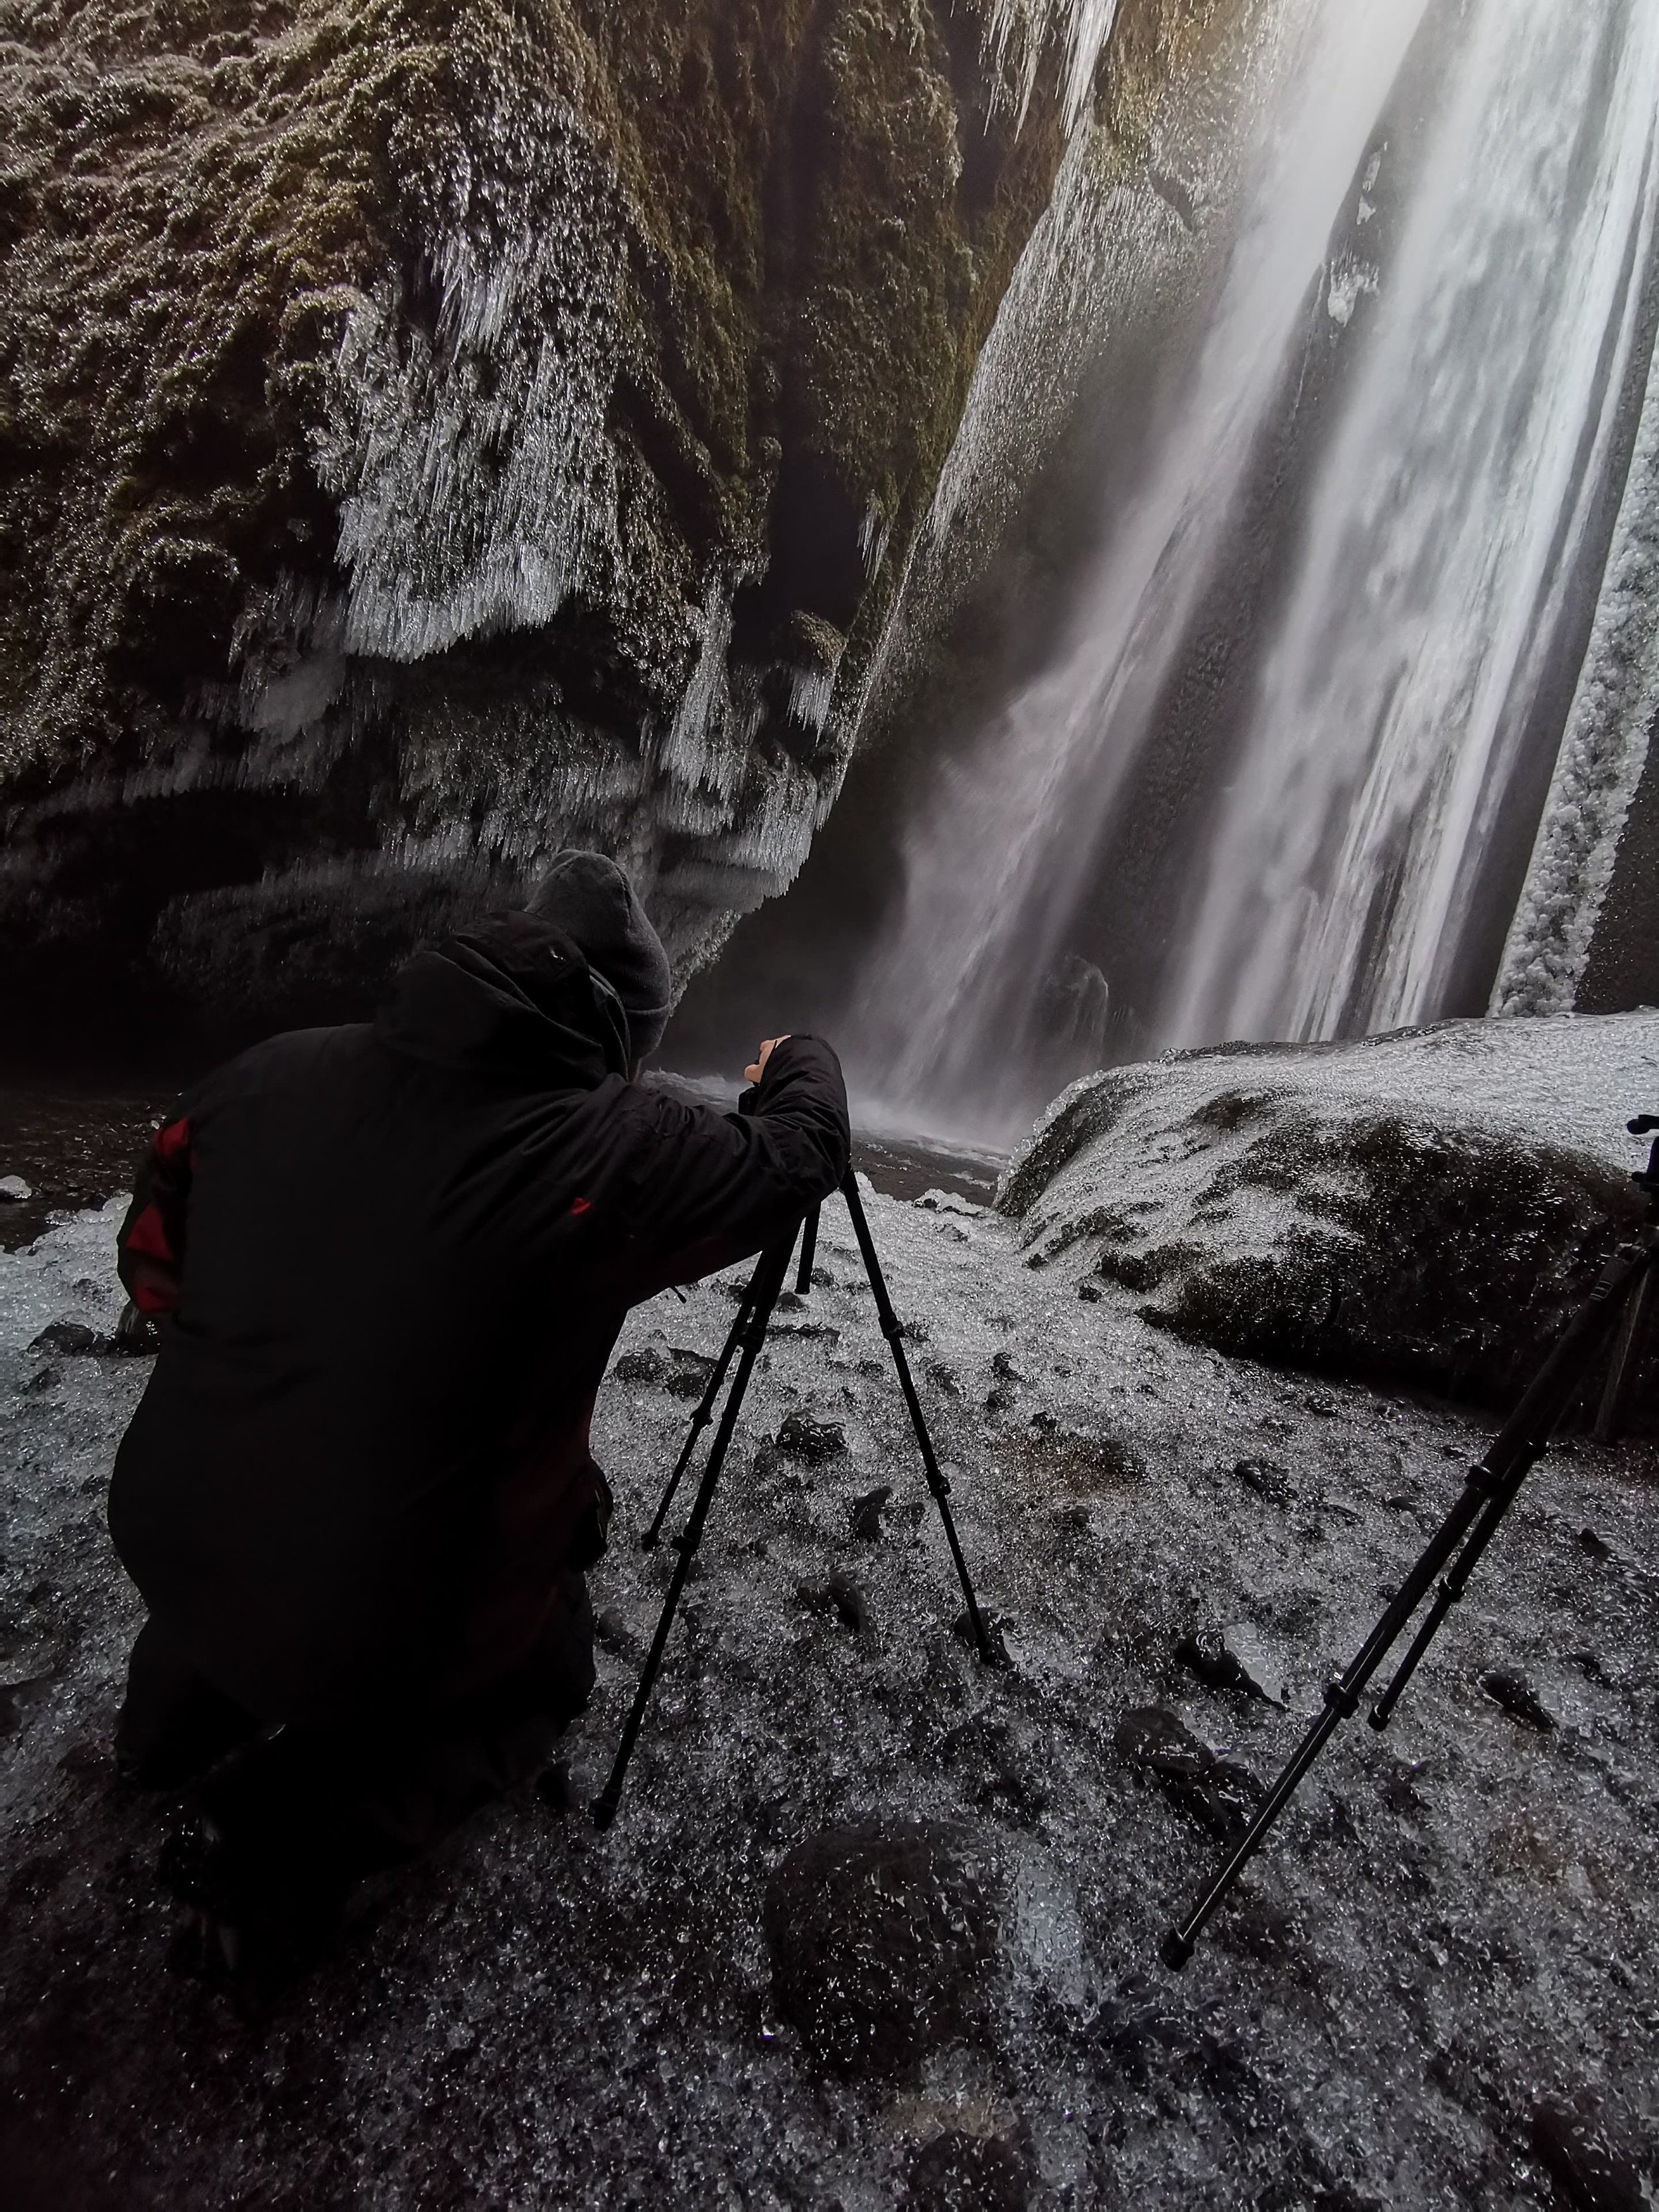 Iceland. snow. travel. adventure. photography. trip. epic landscape. snow. cold. freezing. sunrise. taking the shot.jpg